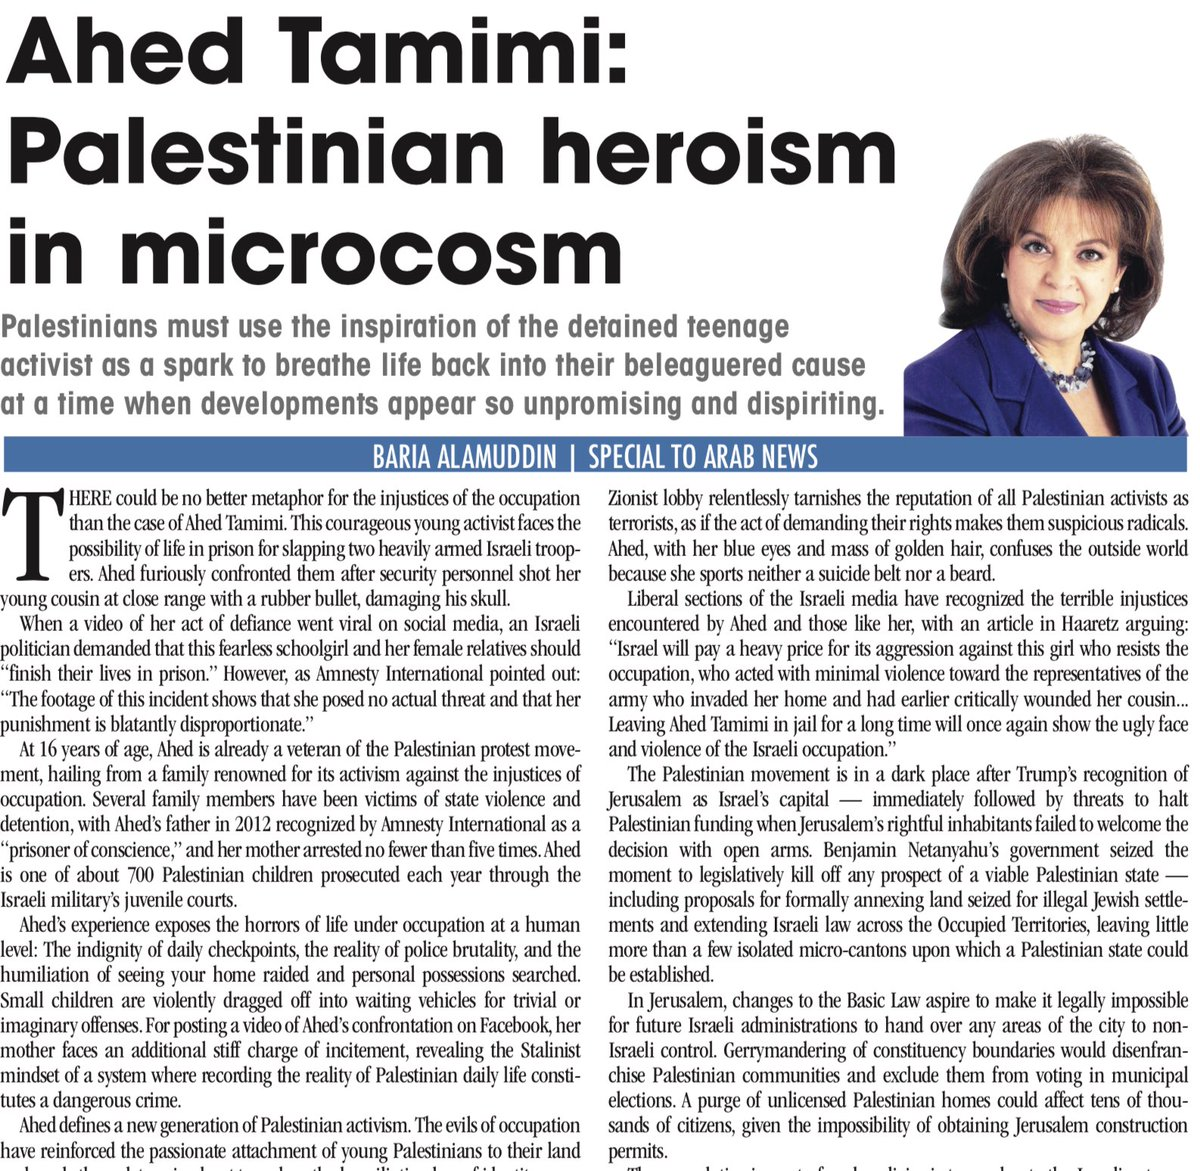 OP-ED: #Palestinians must use the inspiration of the detained #teenage activist #AhedTamimi as a spark to breathe life back into their beleaguered cause at a time when developments appear so unpromising and dispiriting, writes Baria Alamuddin https://t.co/WZ3L1nIDwf